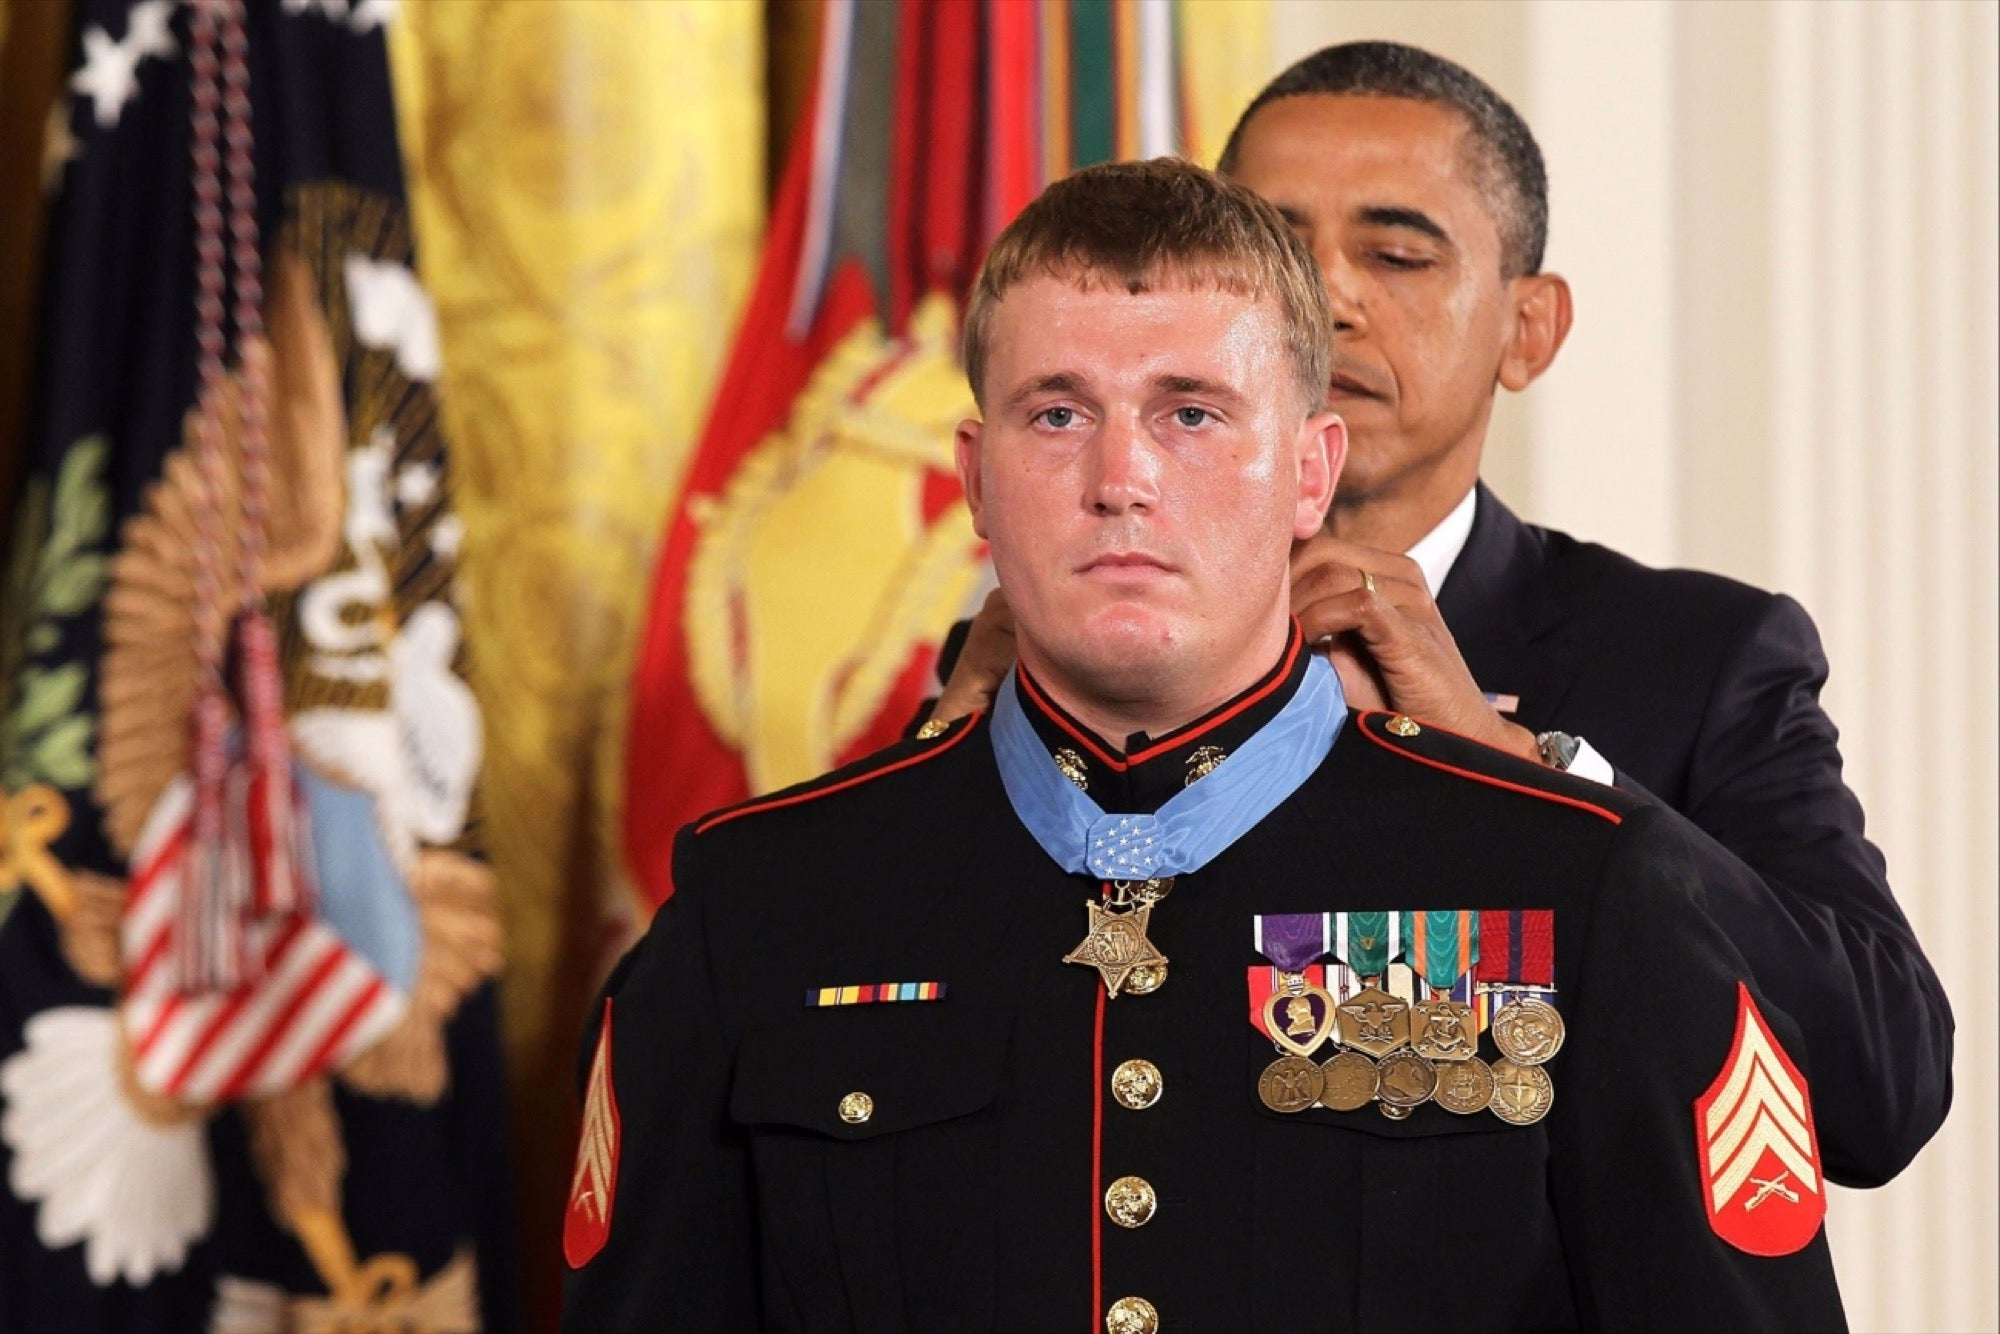 How the Memory of His Fallen Brothers Powers Dakota Meyer's Passion